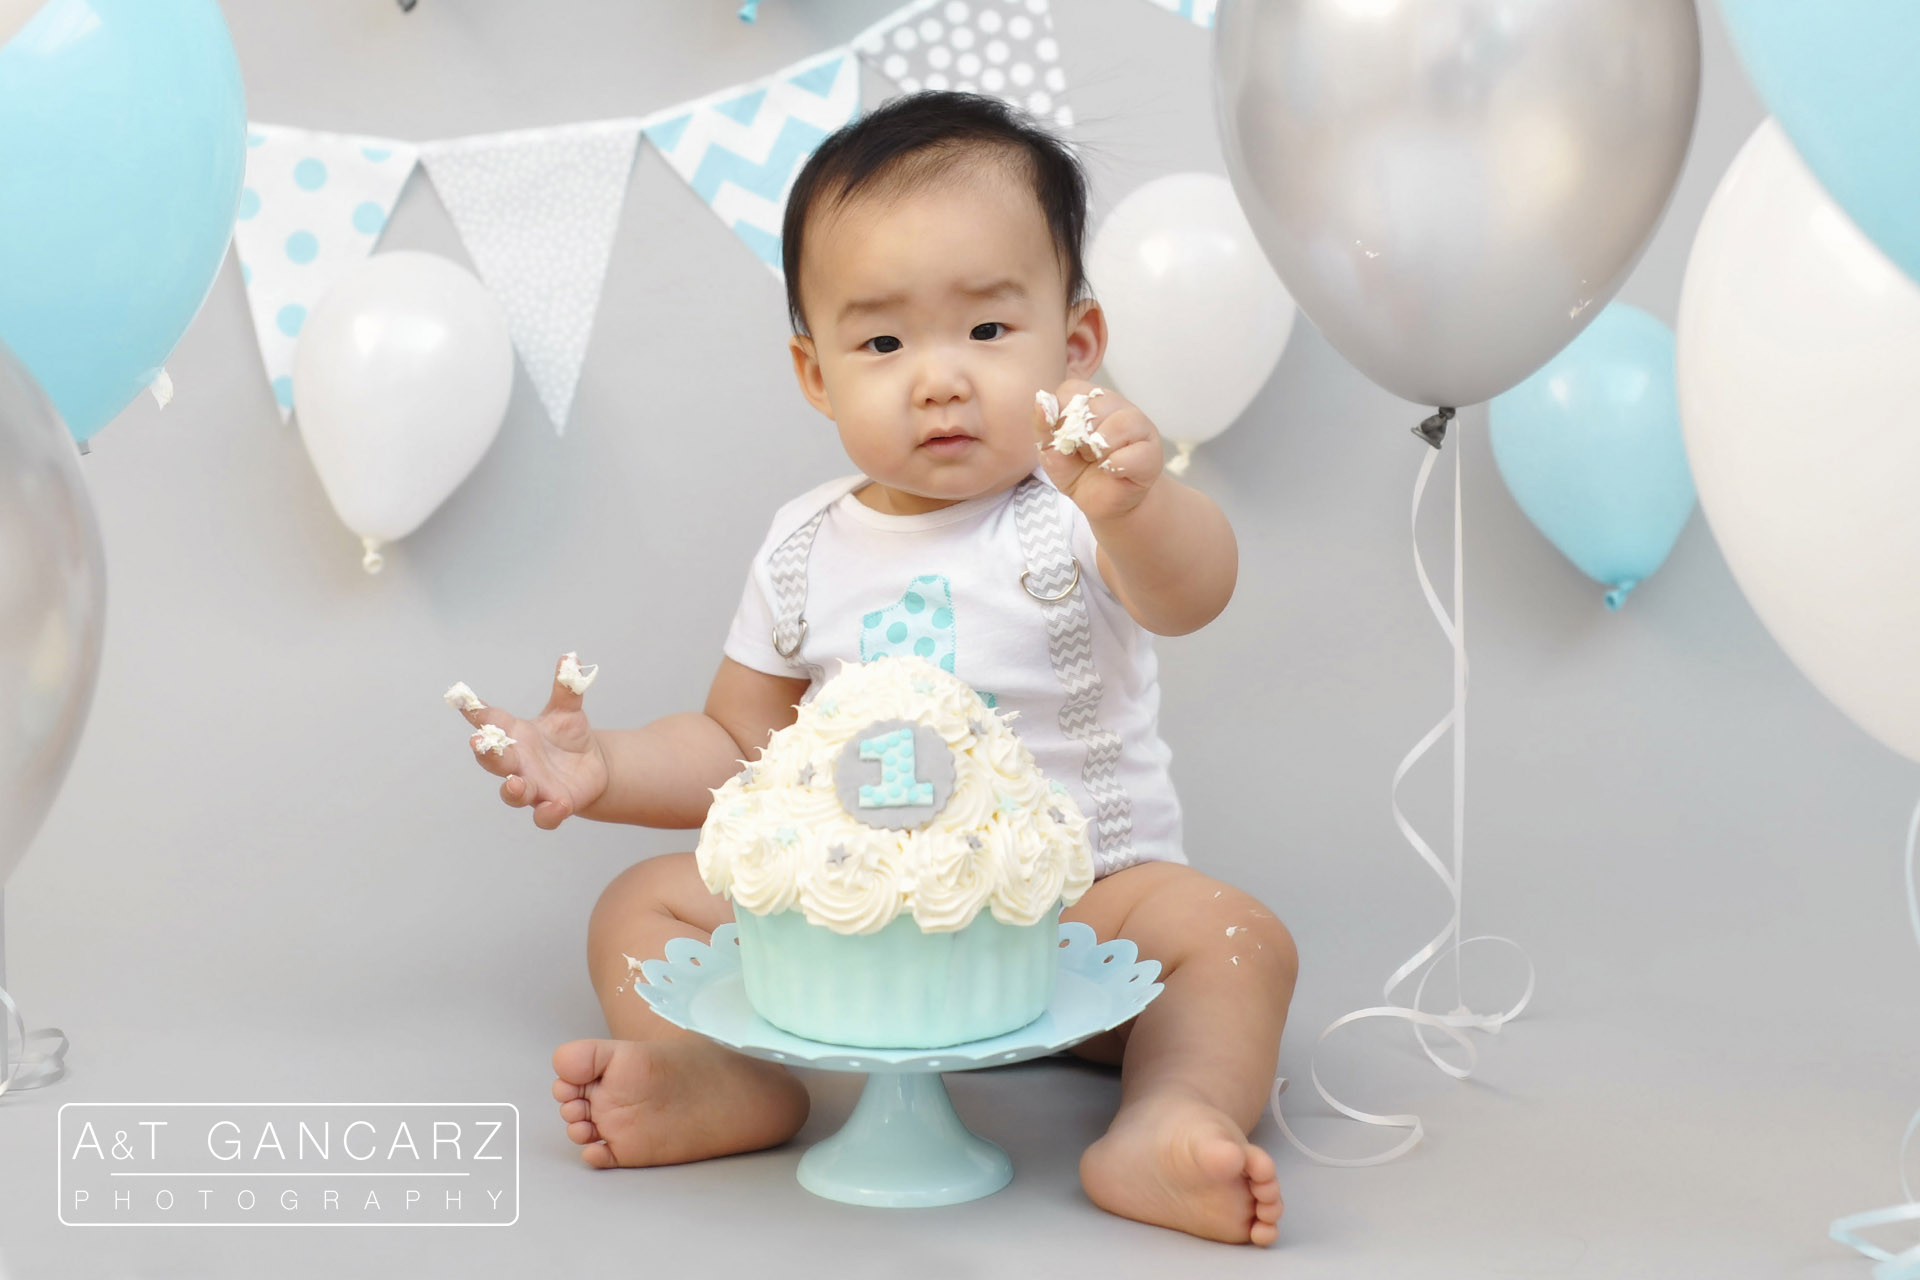 What Is A Cake Smash Photo Shoot